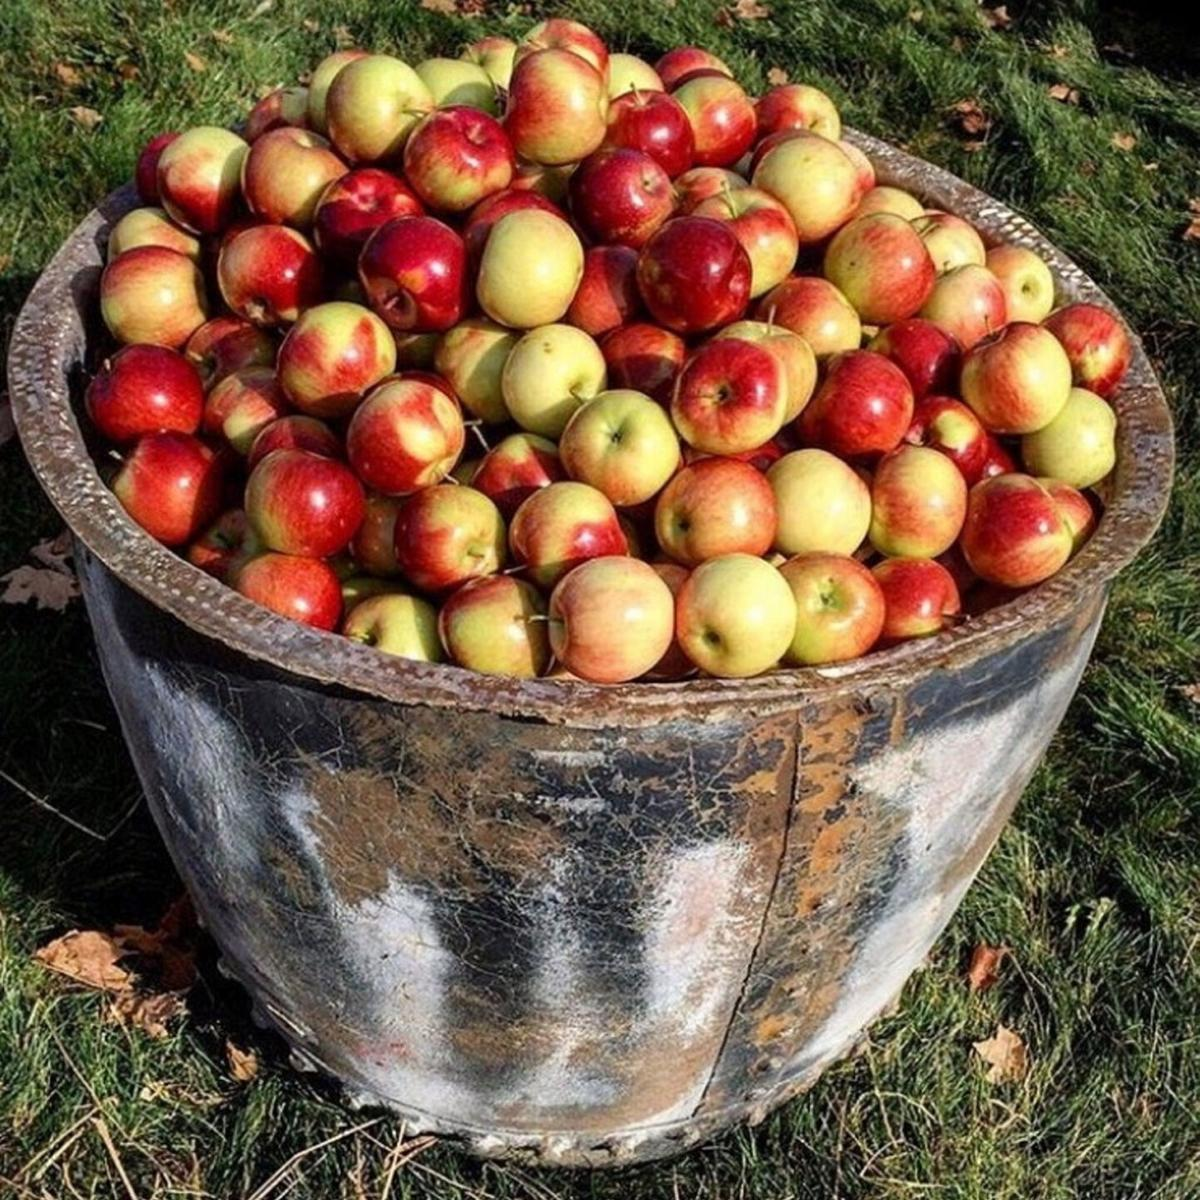 New apple disease surfaces in Twin Counties